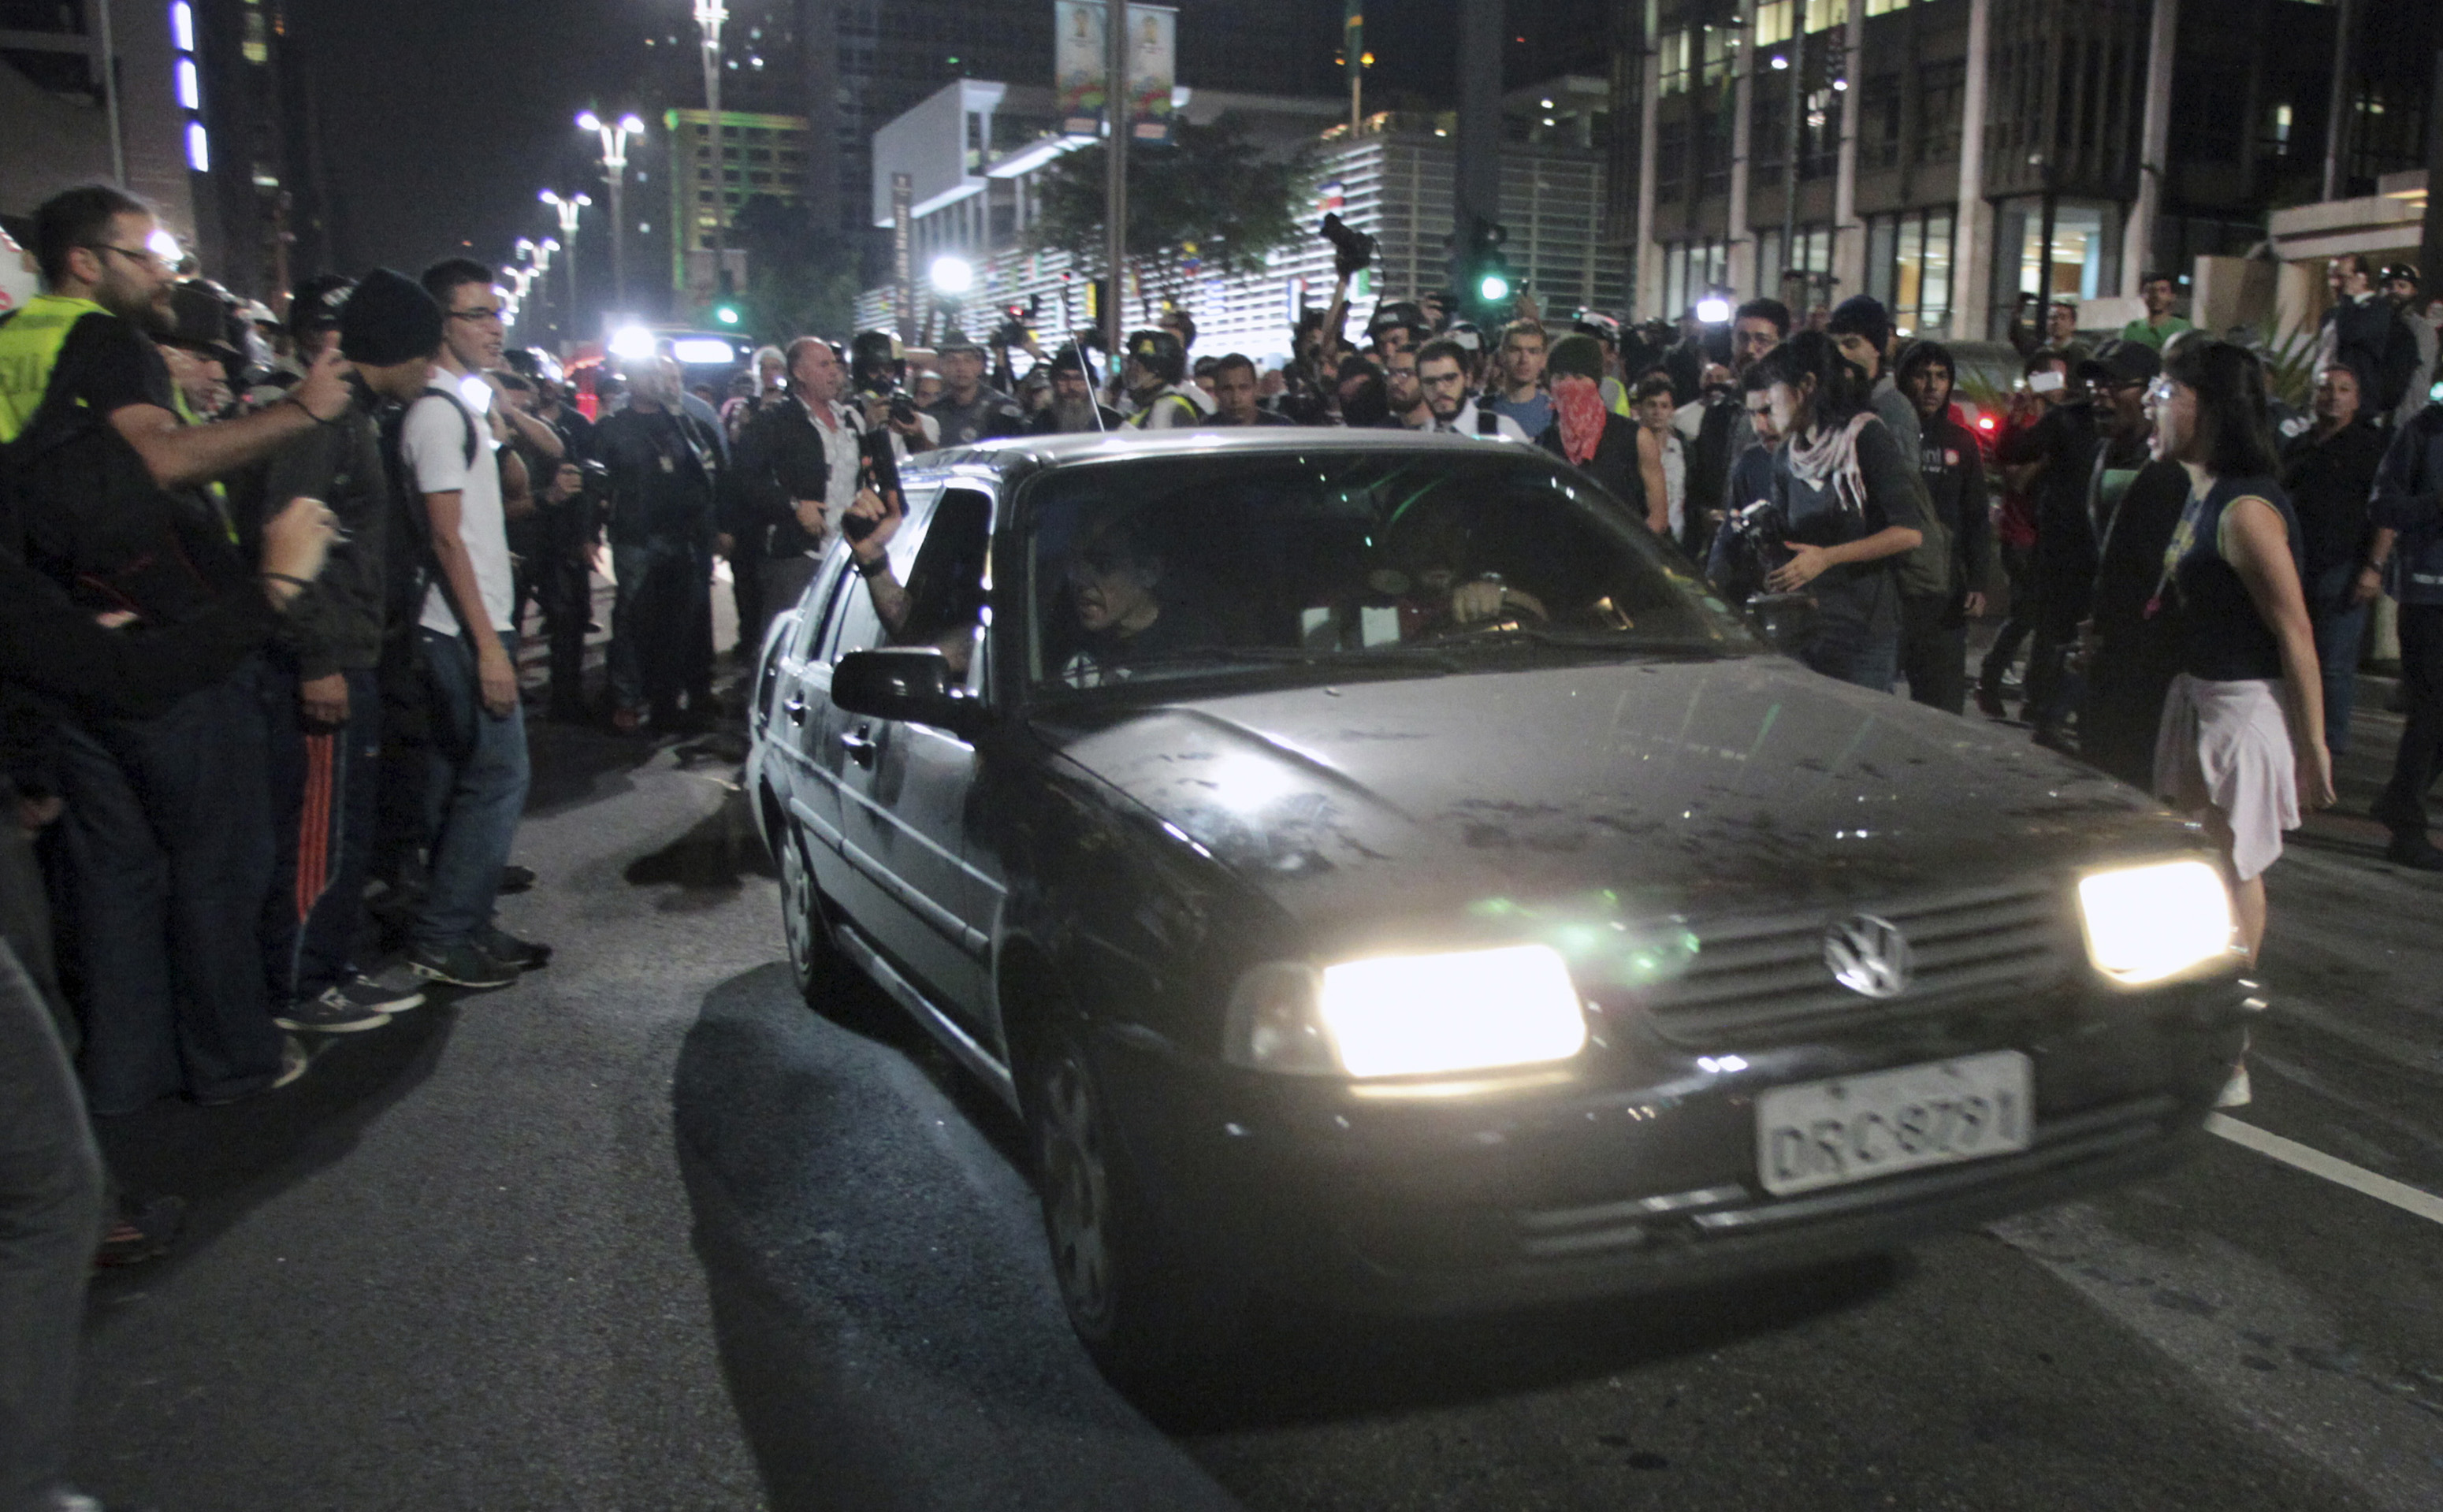 A Brazilian policeman pulls a gun out of the window of a car during a June 23 protest against the World Cup on a street in São Paulo. Activists say the arrests of two men at those protests were trumped up by police.